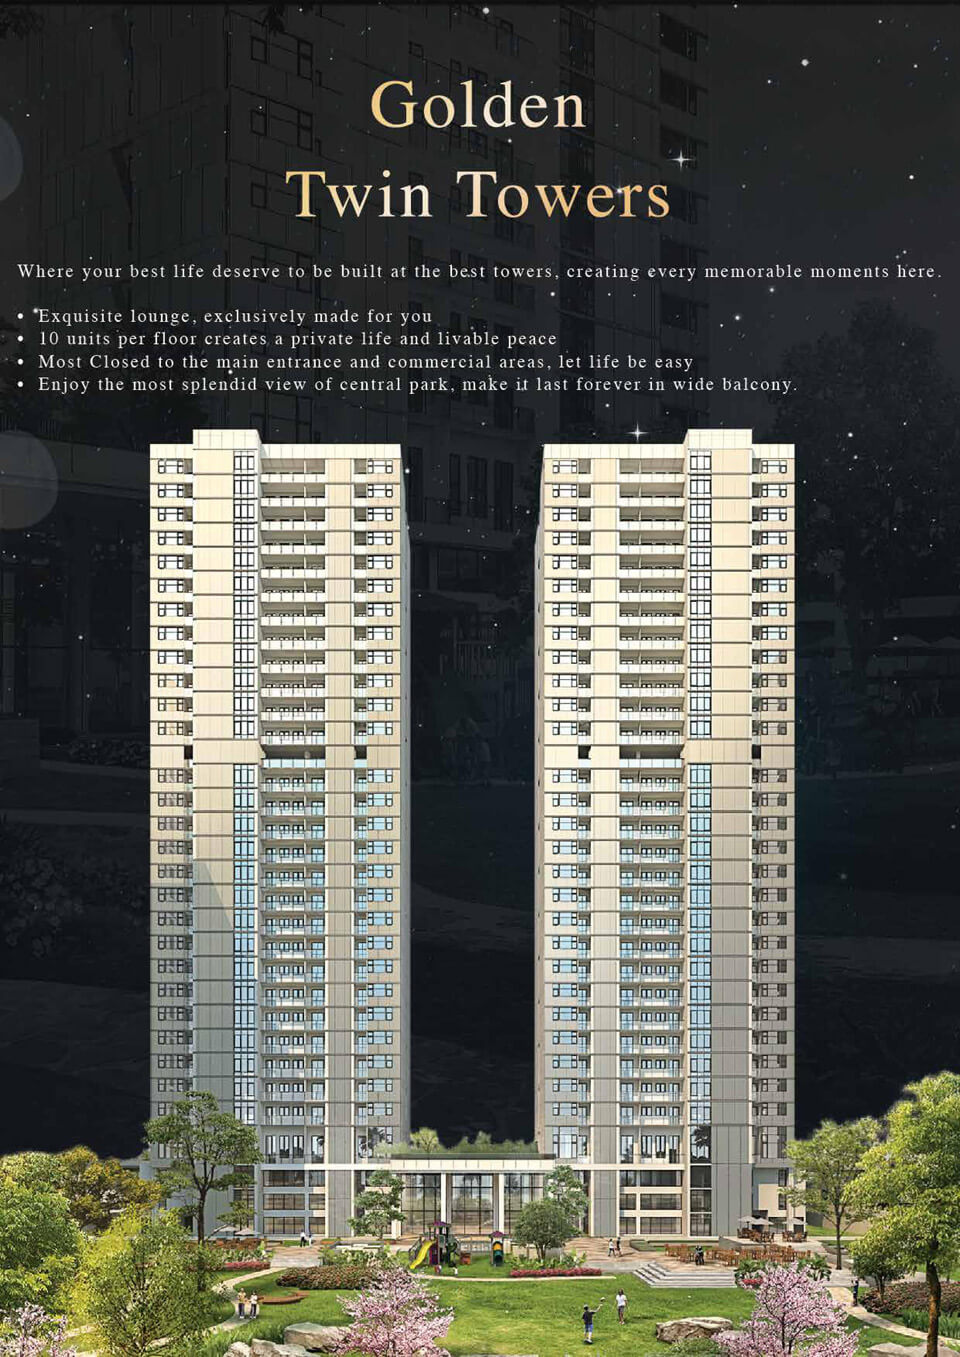 Golden Twin Towers DAMOCI Apartment